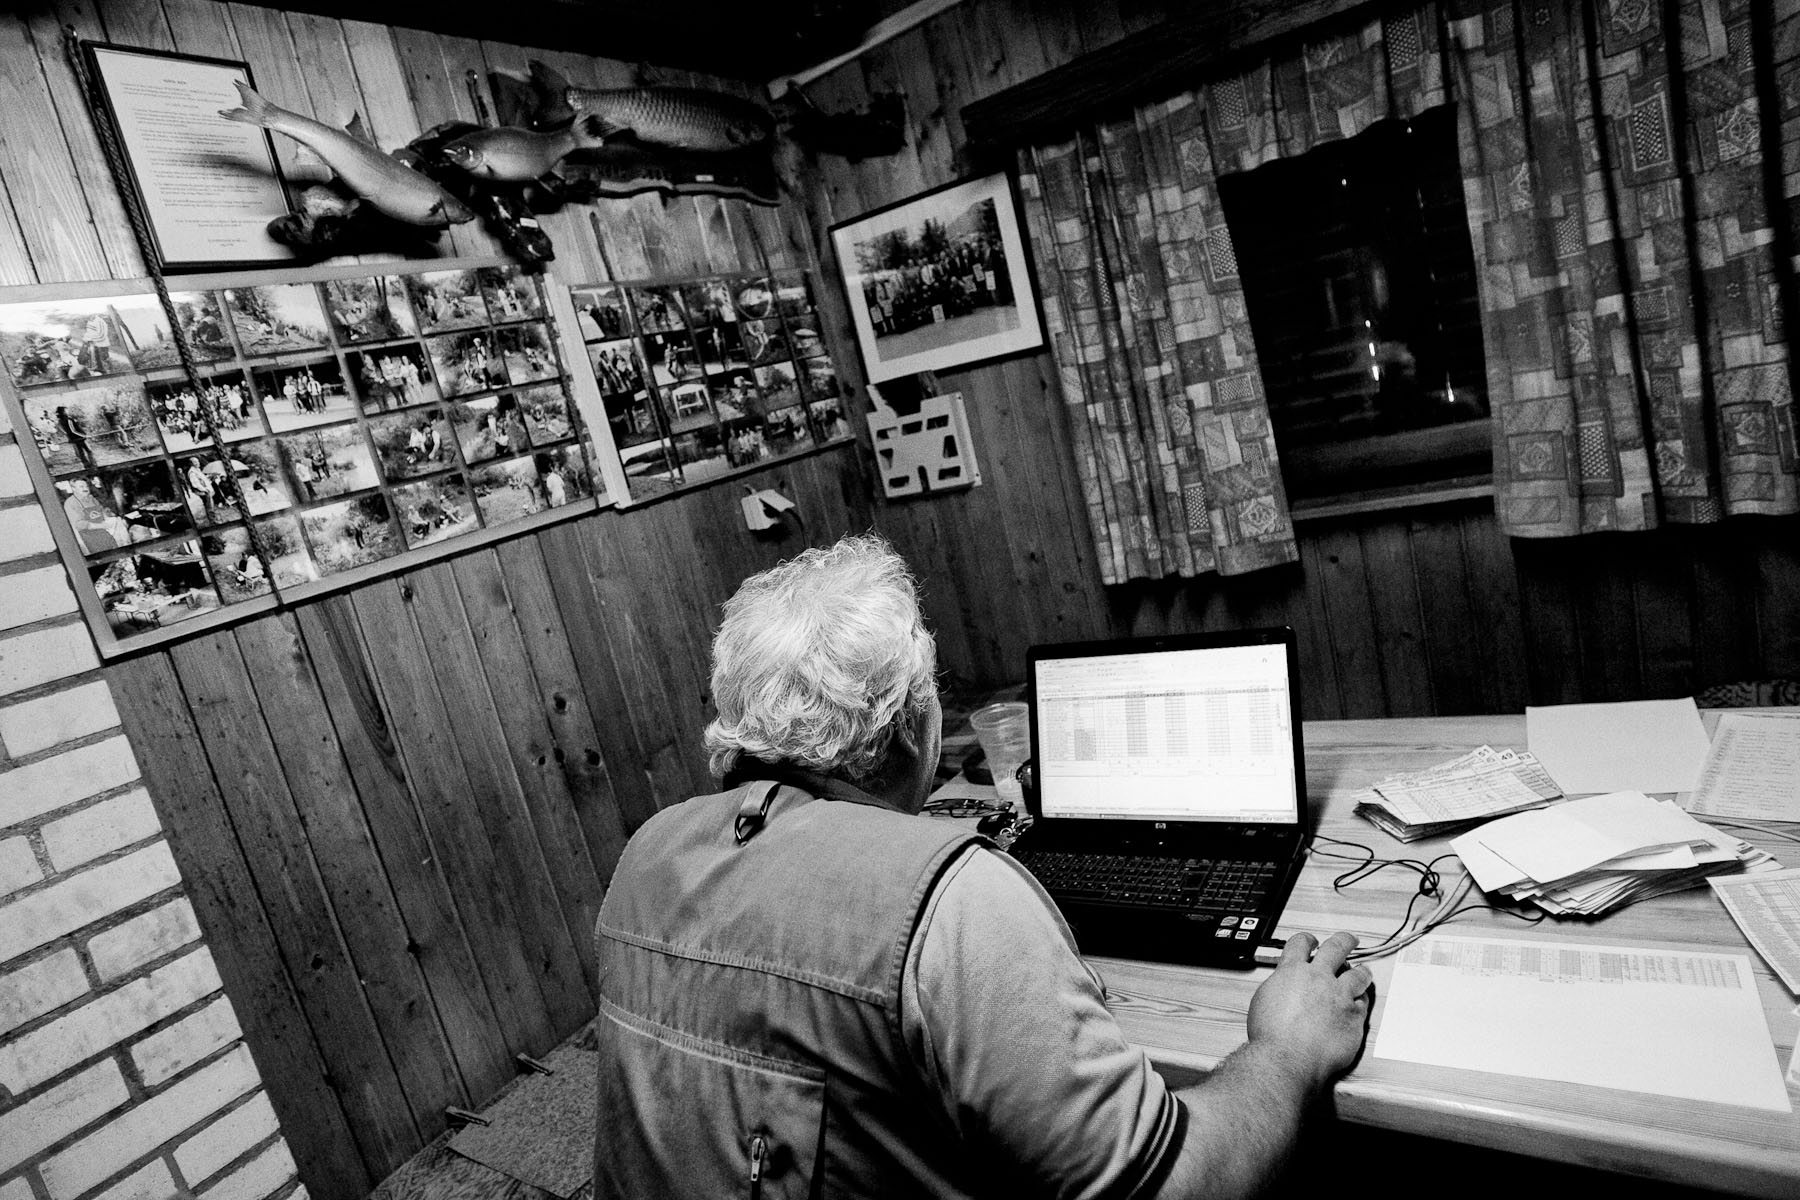 Saso Rebula calculates results in a fishing club cottage after the National Fly Fishing Championship competition in Kamnik, Slovenia, May 29, 2011.